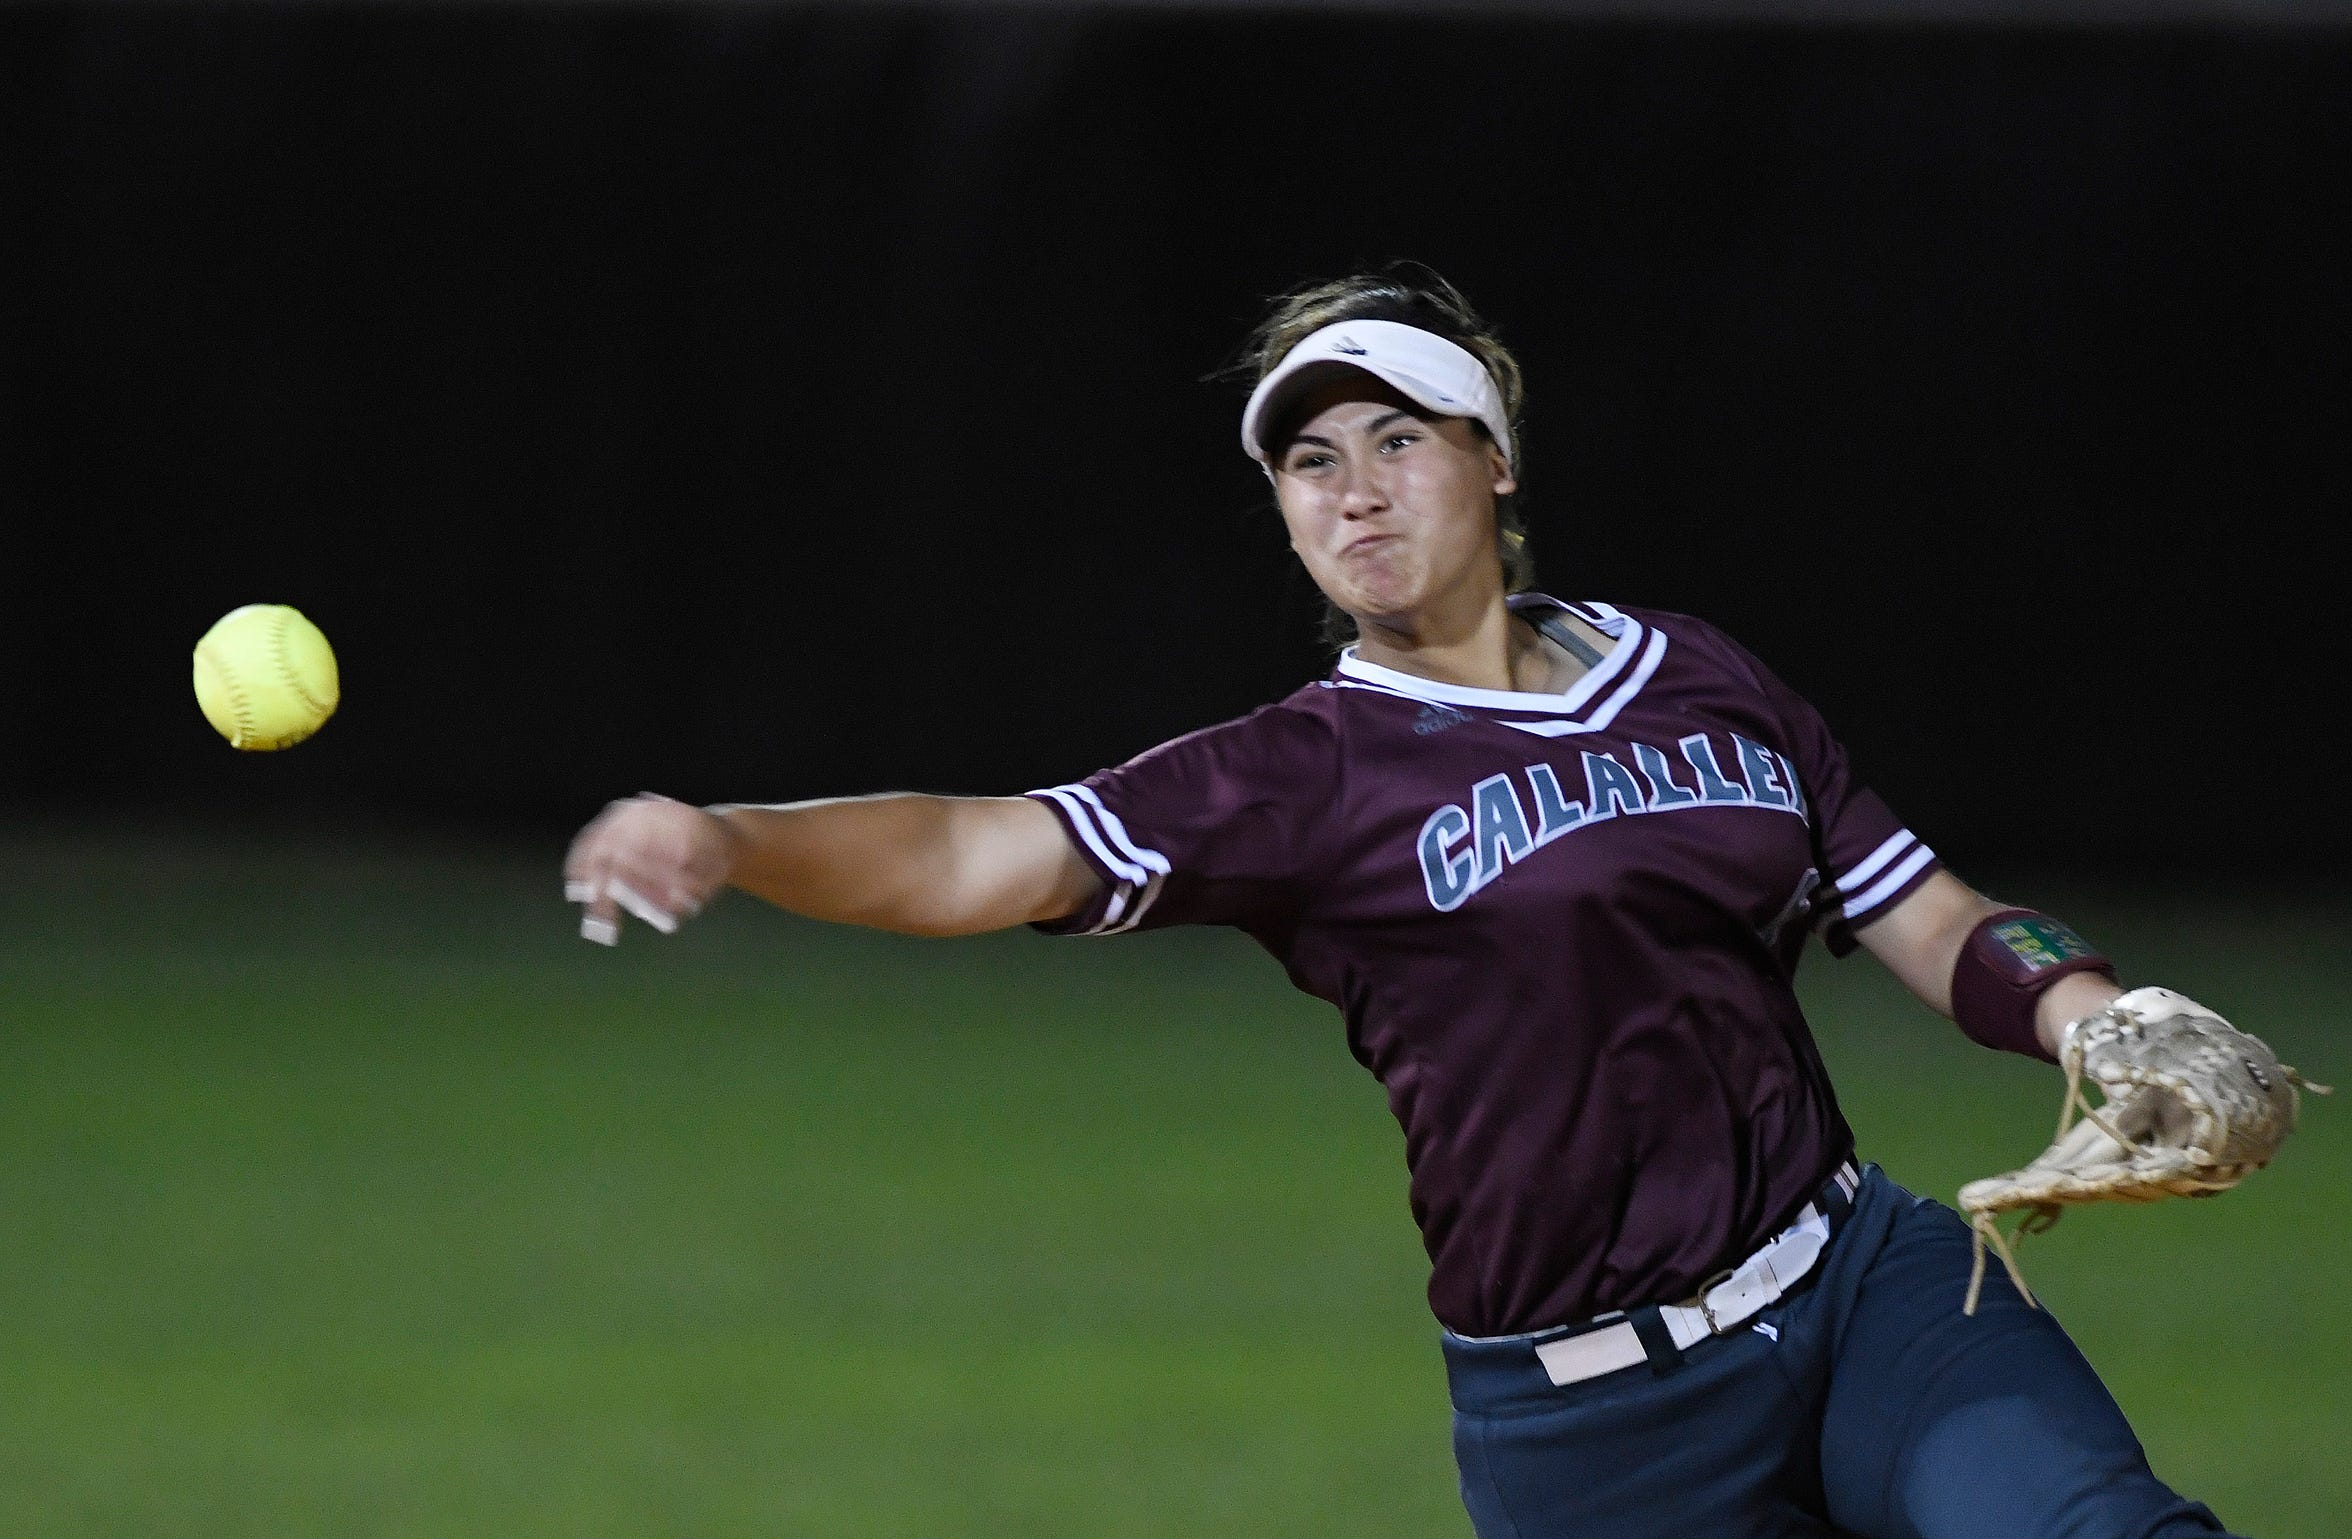 Calallen's Kat Flores throws the ball to first base during the game against Flour Bluff, Thursday, April 18, 2019, at Flour Bluff.